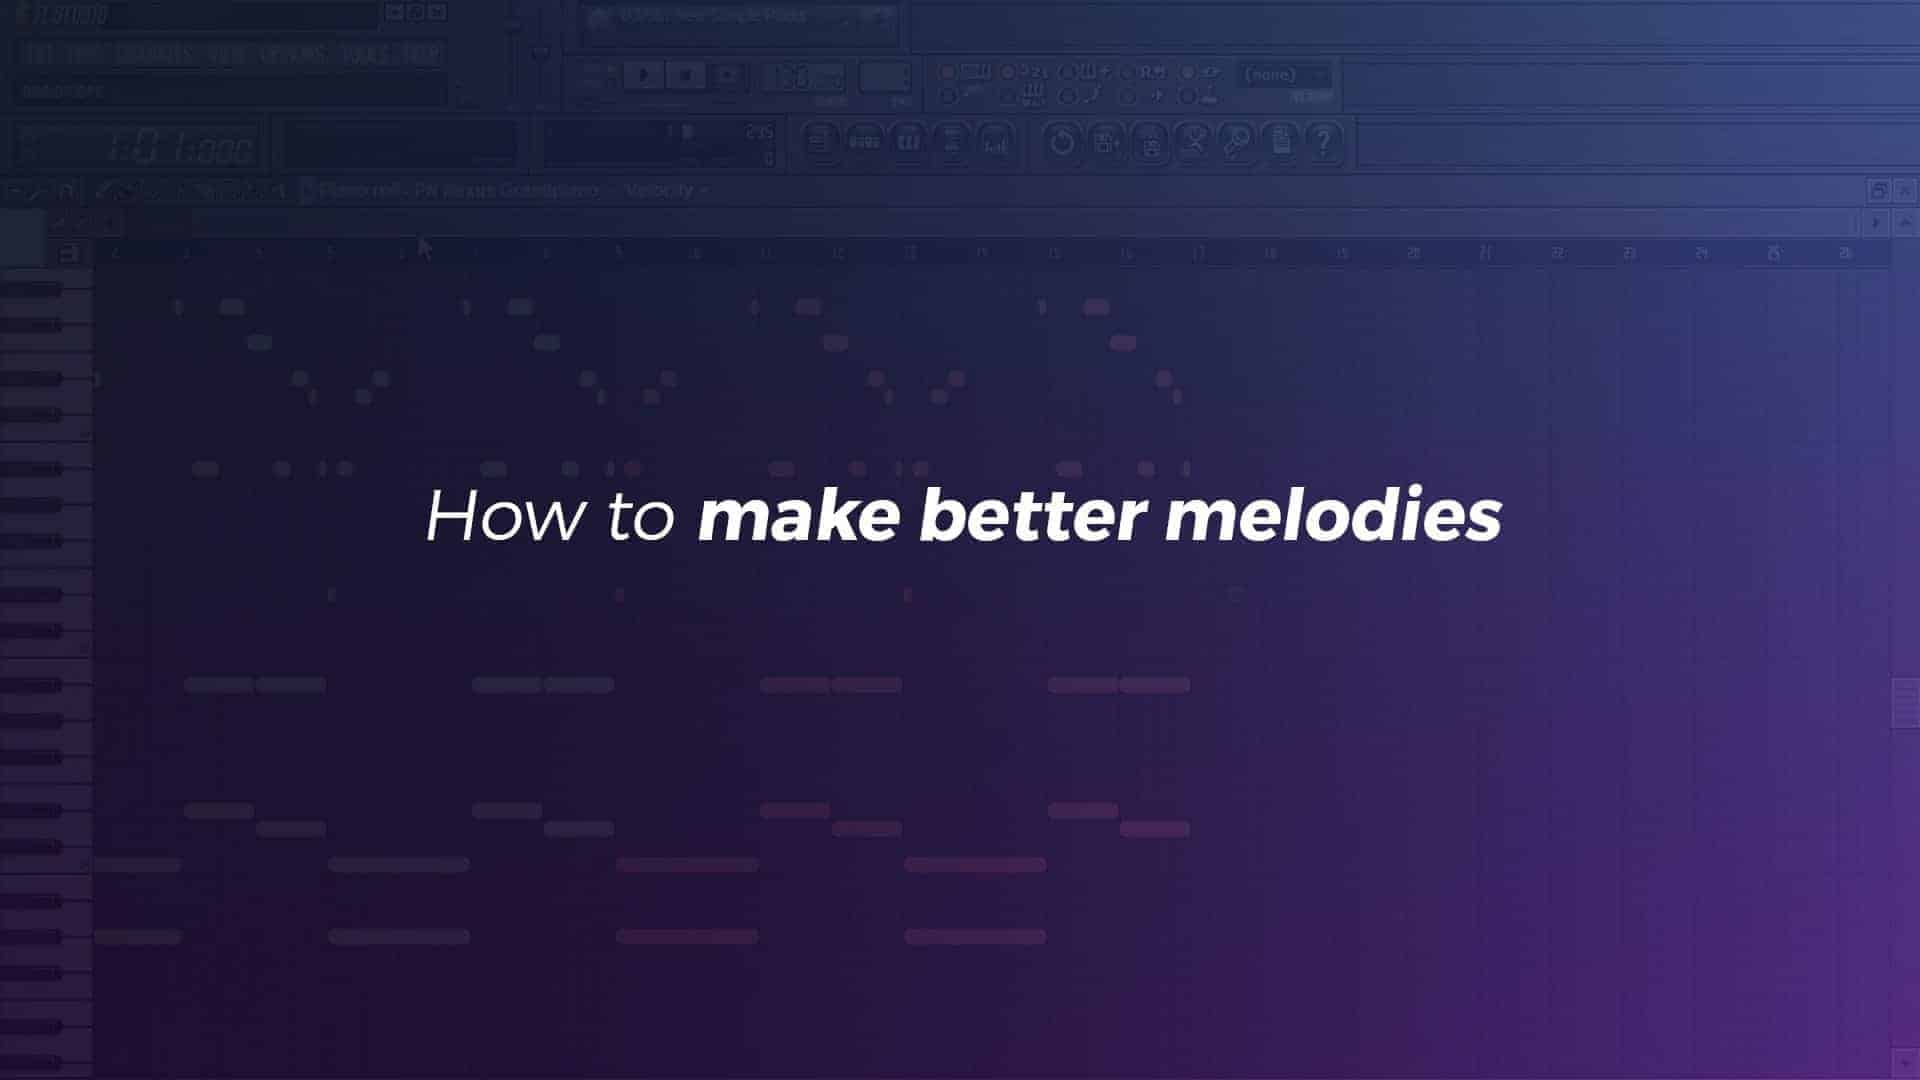 How to make better melodies